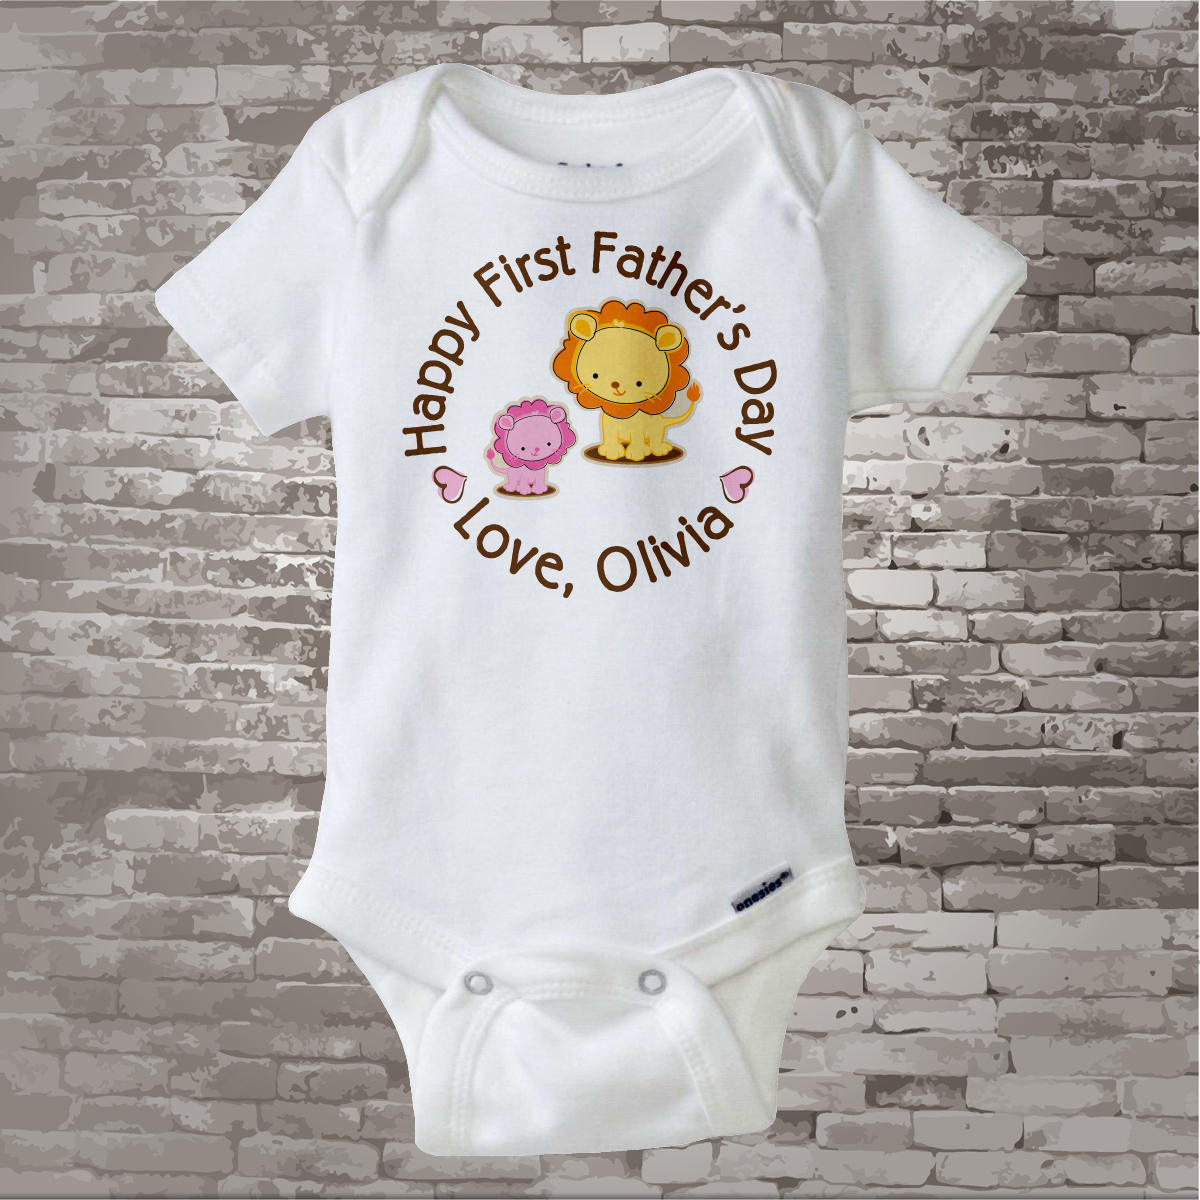 7c1b8eba Happy First Father's Day, 1st Fathers Day with Father and Daughter Lions  Personalized DadTee Shirt or Onesie New Dad Gift 06032014f. gallery photo  ...